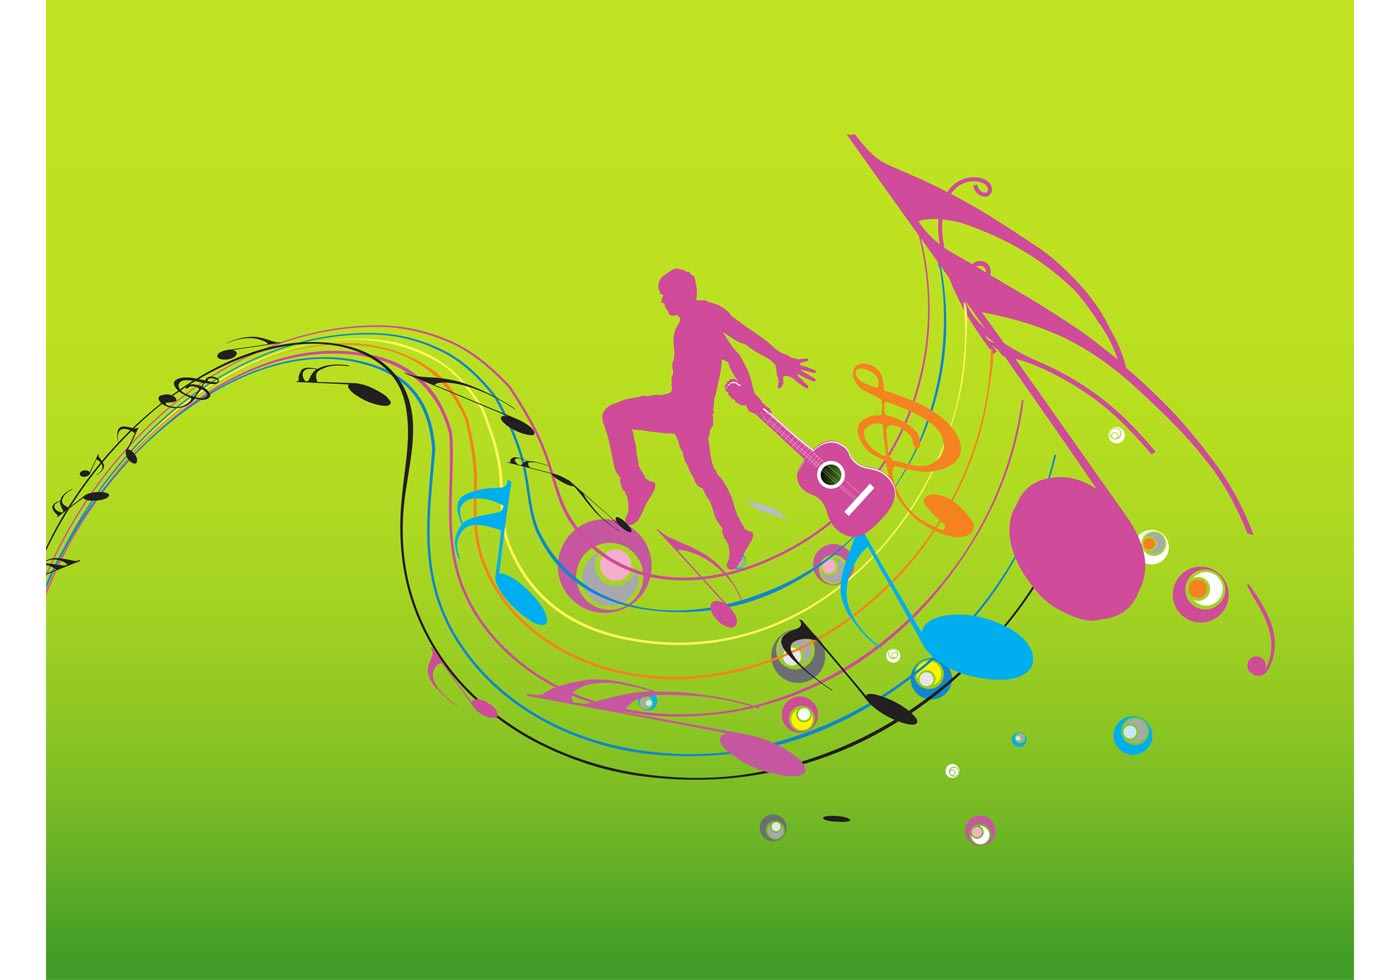 colorful music design download free vector art stock